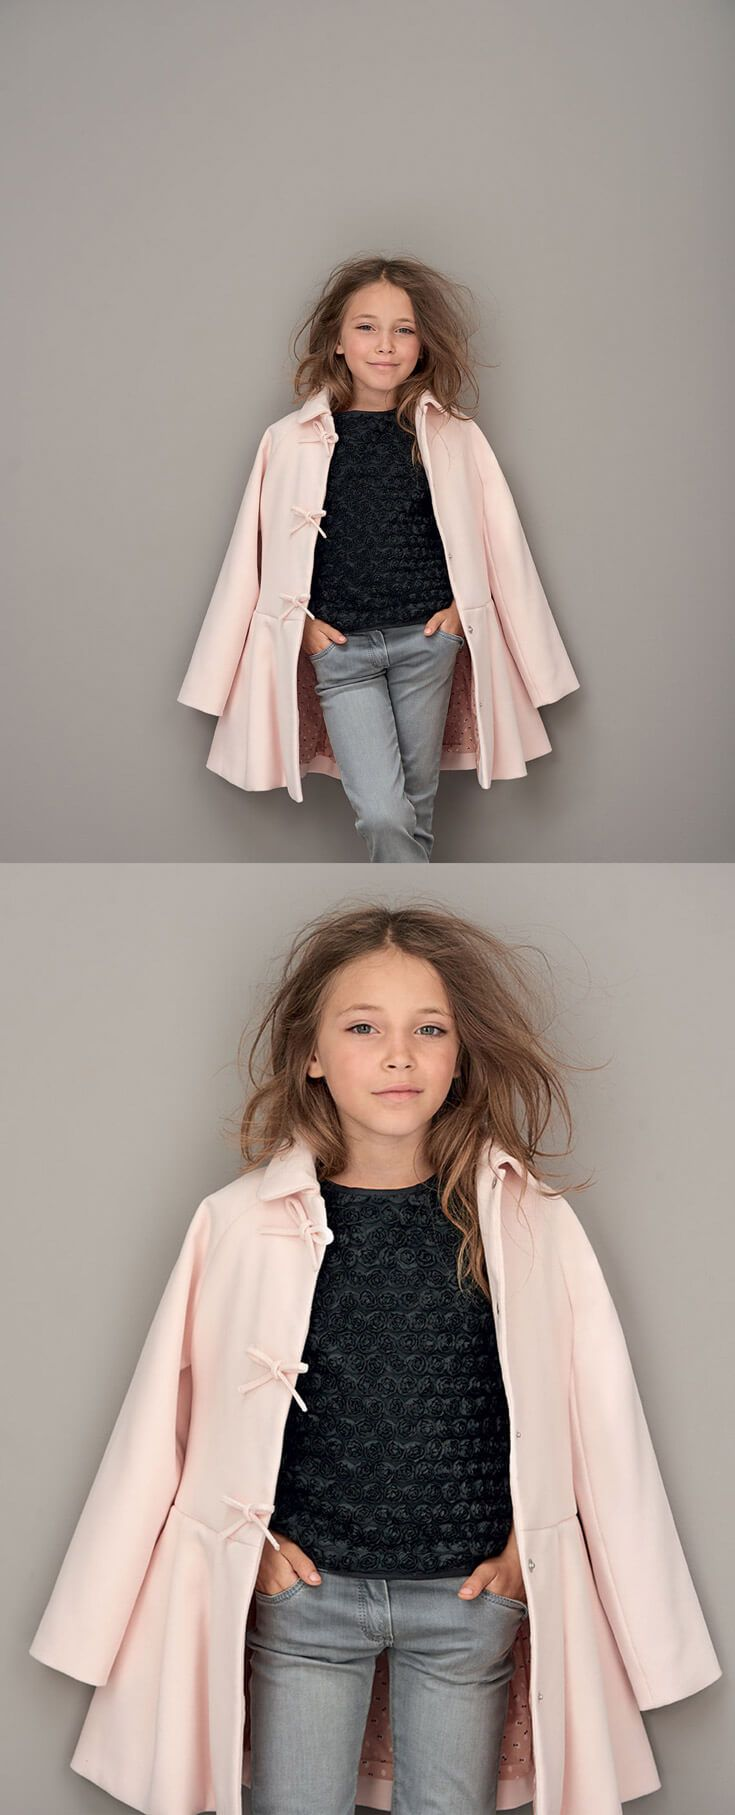 Fall Winter 2016 wardrobe fun for trendy girls. Pairing luxurious items from the Marèse Couture line and more casual attire for a classy urban look.  #bigbenkids #marese #girls #fashion #clothing #couture #luxury